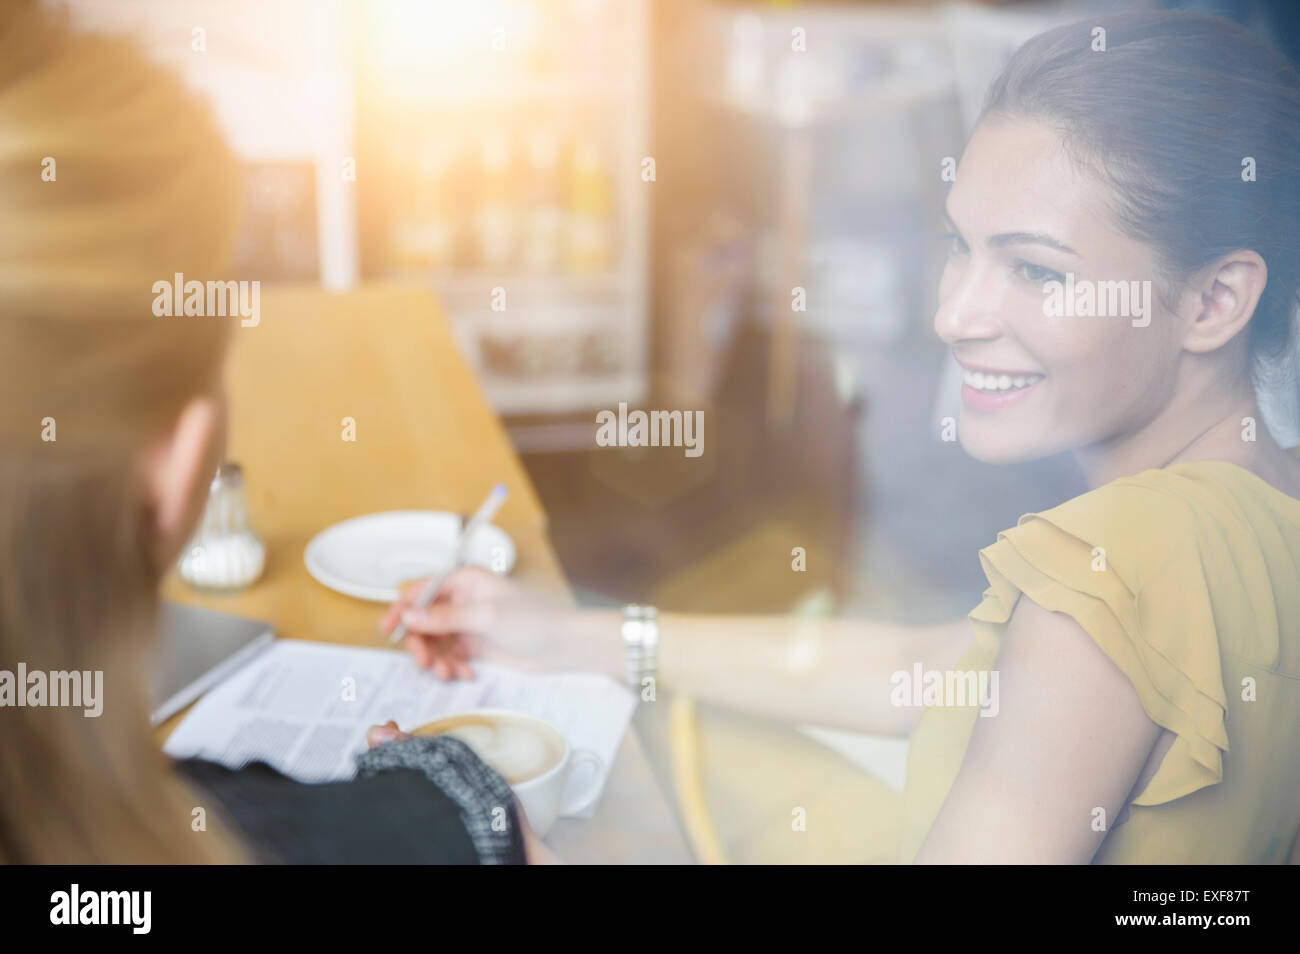 Two female friends having coffee together in cafe - Stock Image